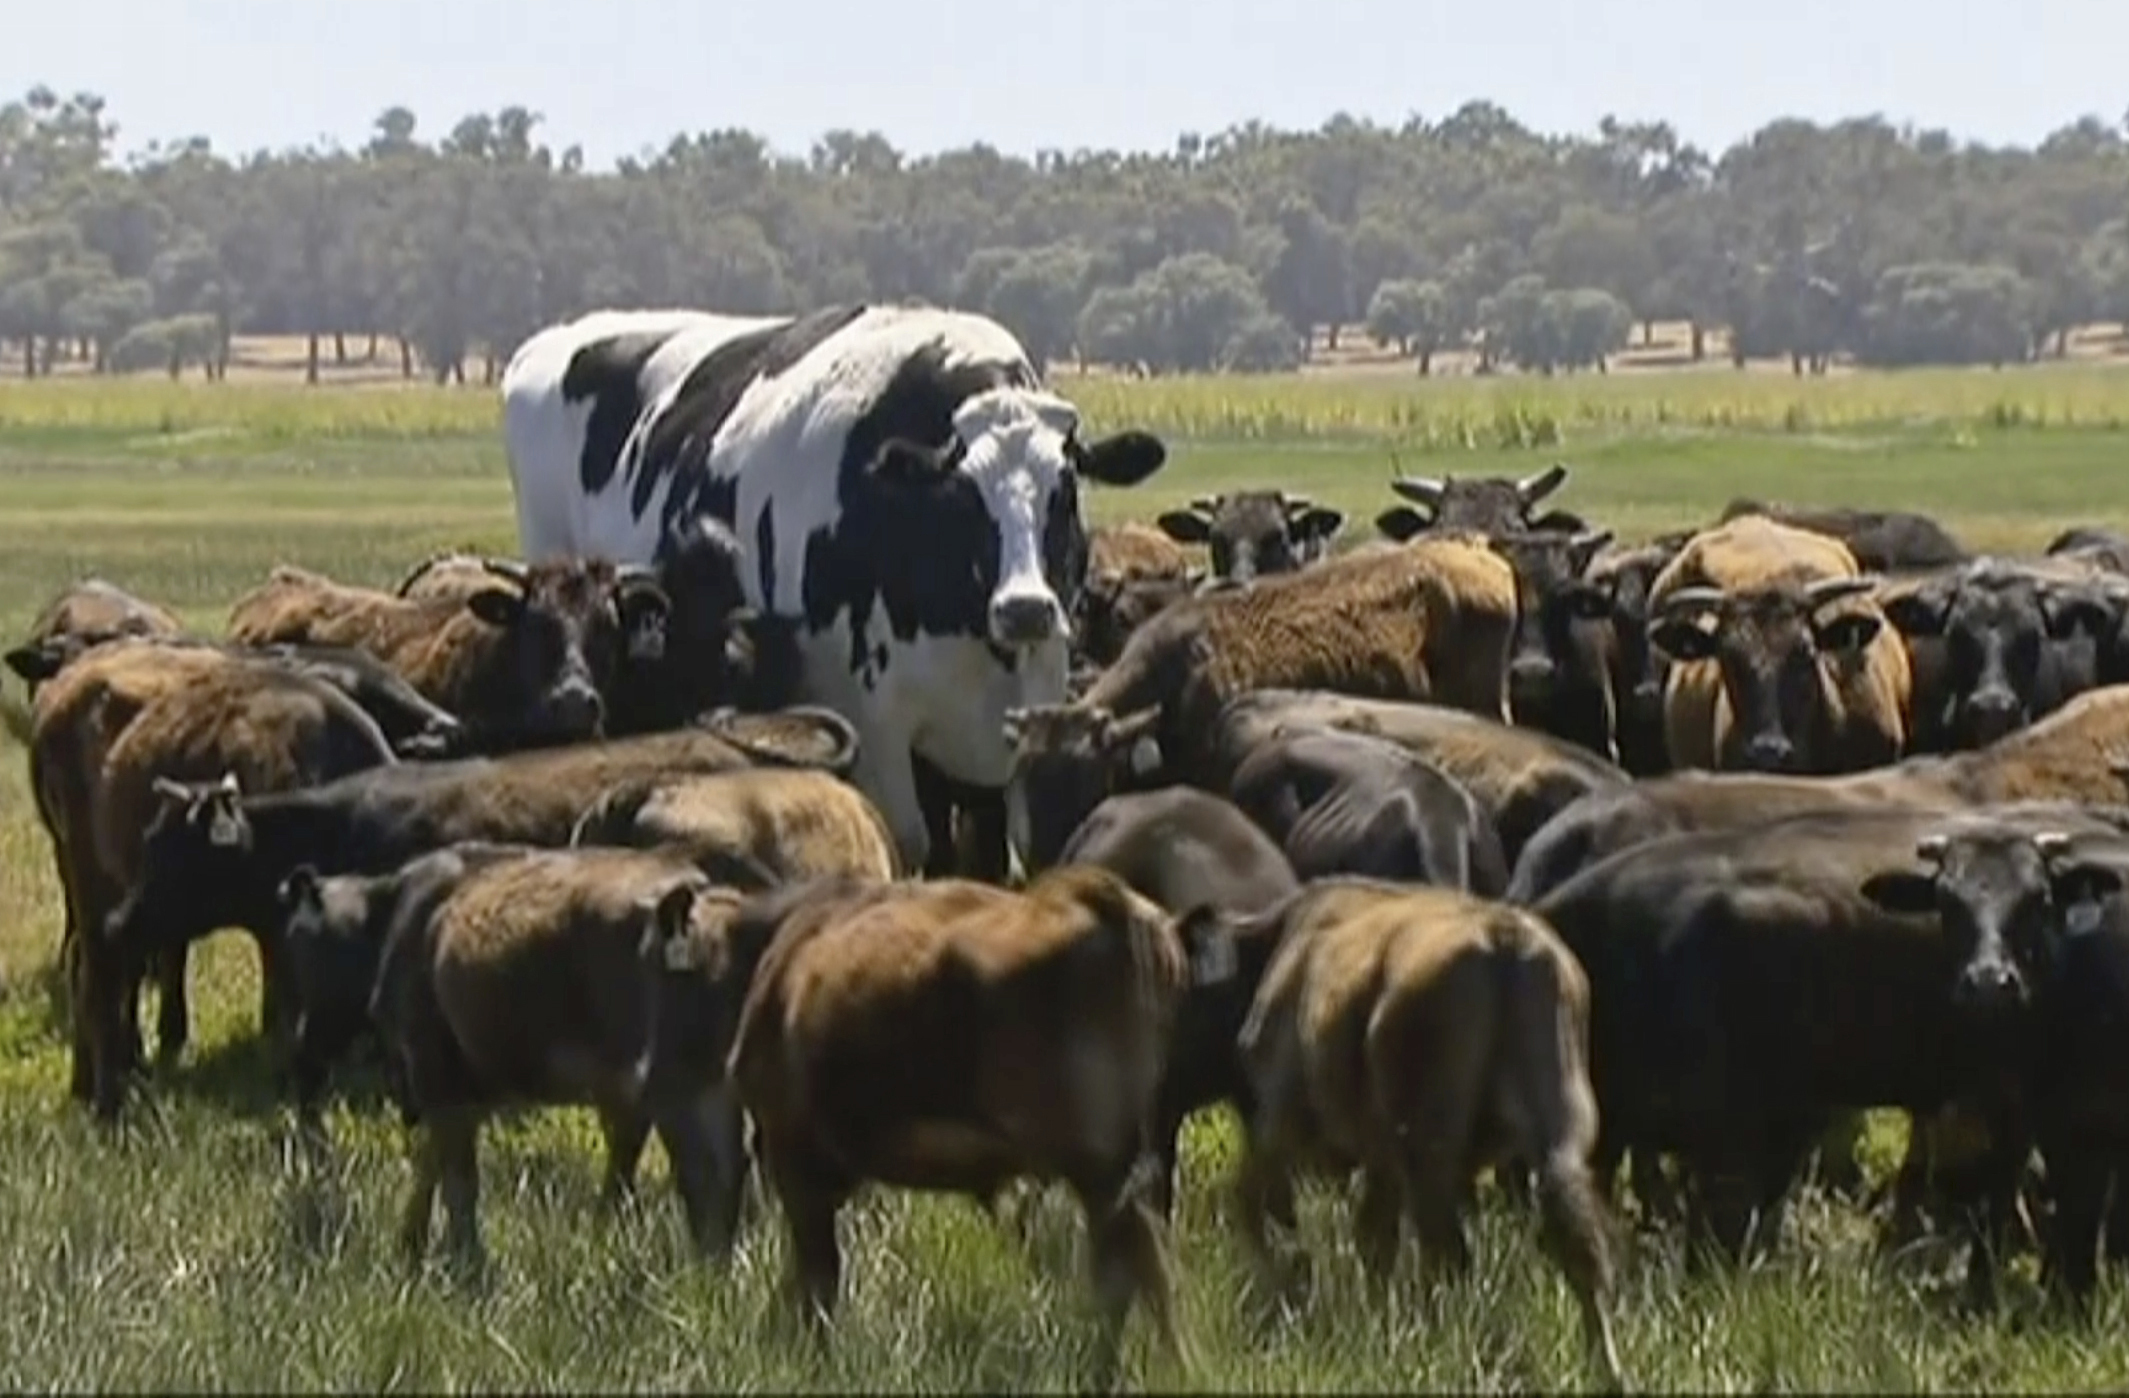 Knickers the gigantic cow - sorry - 'steer'. Credit: PA